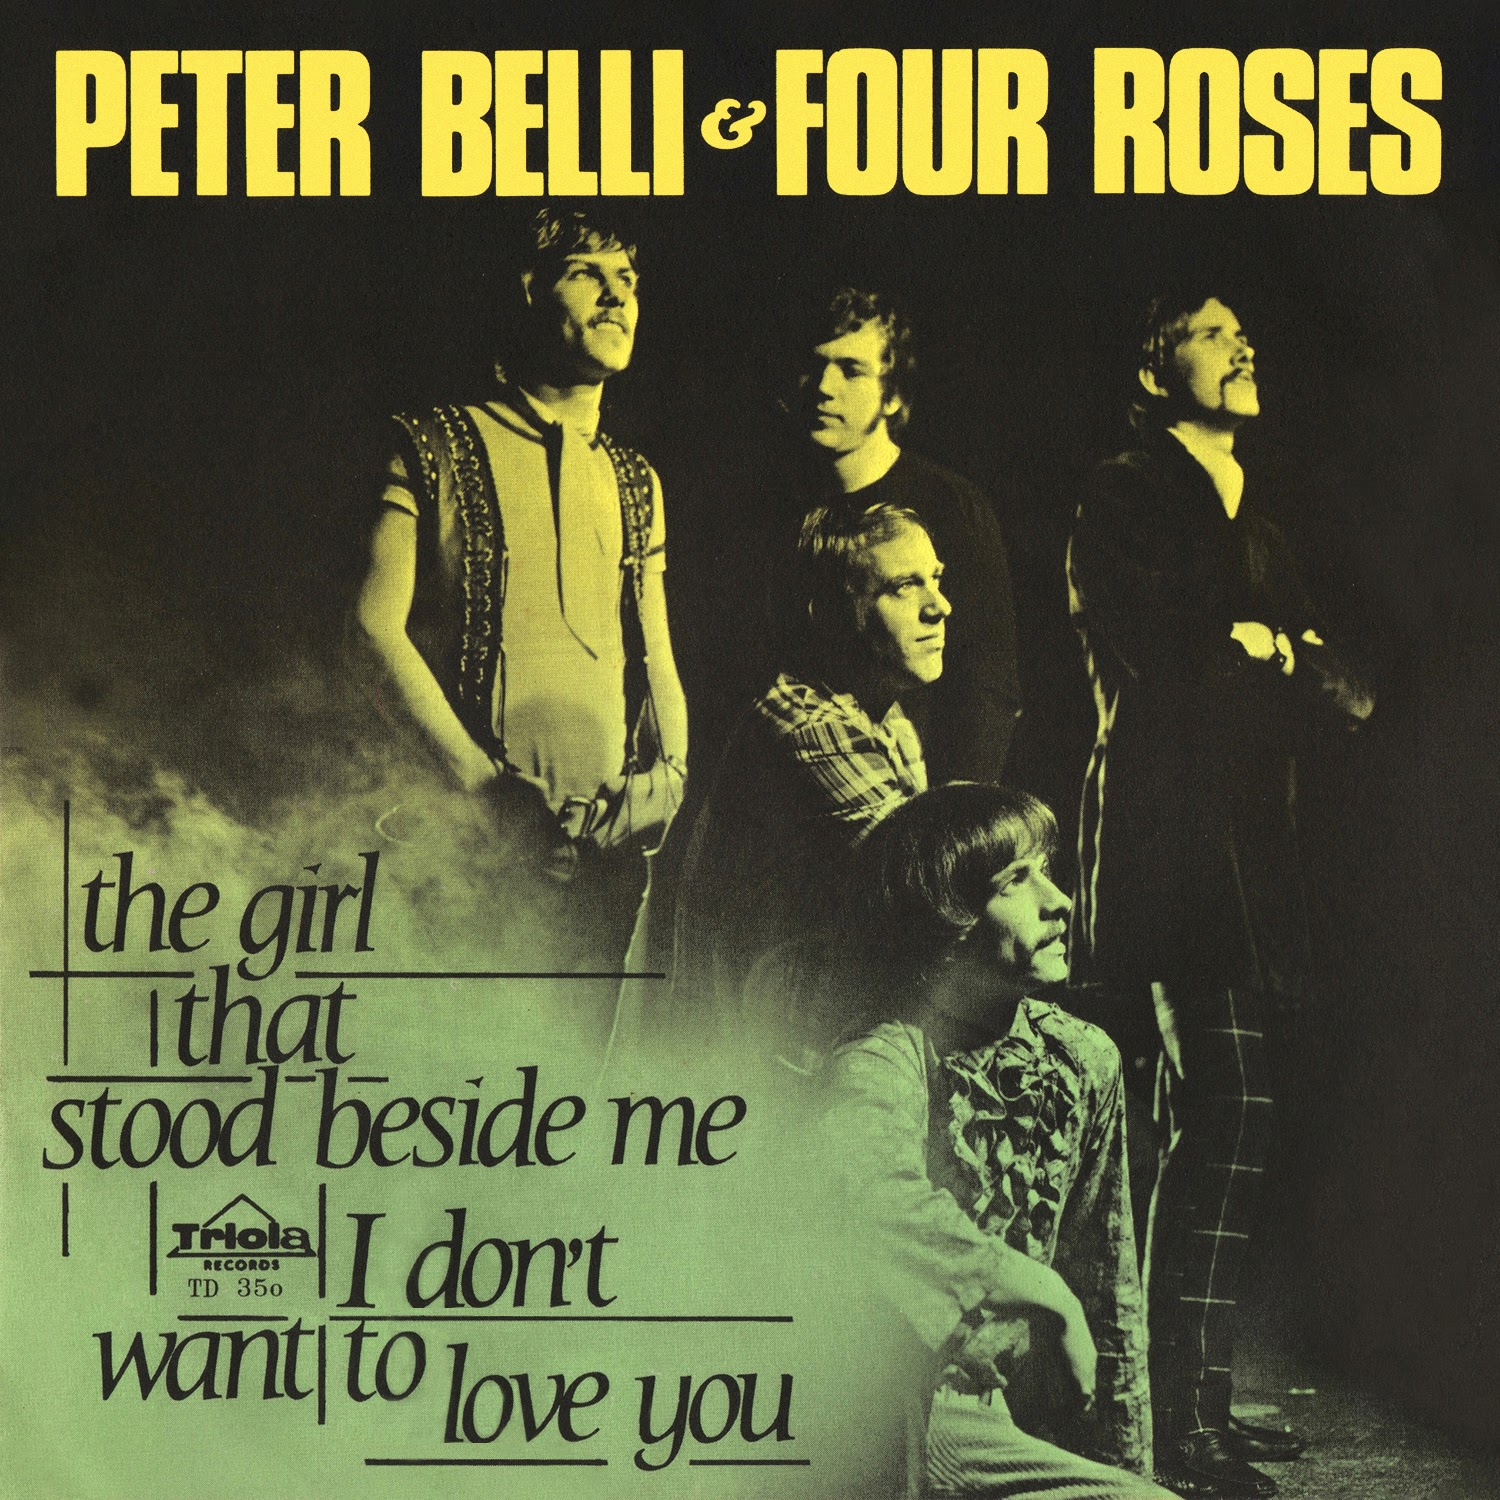 Peter Belli & Four Roses